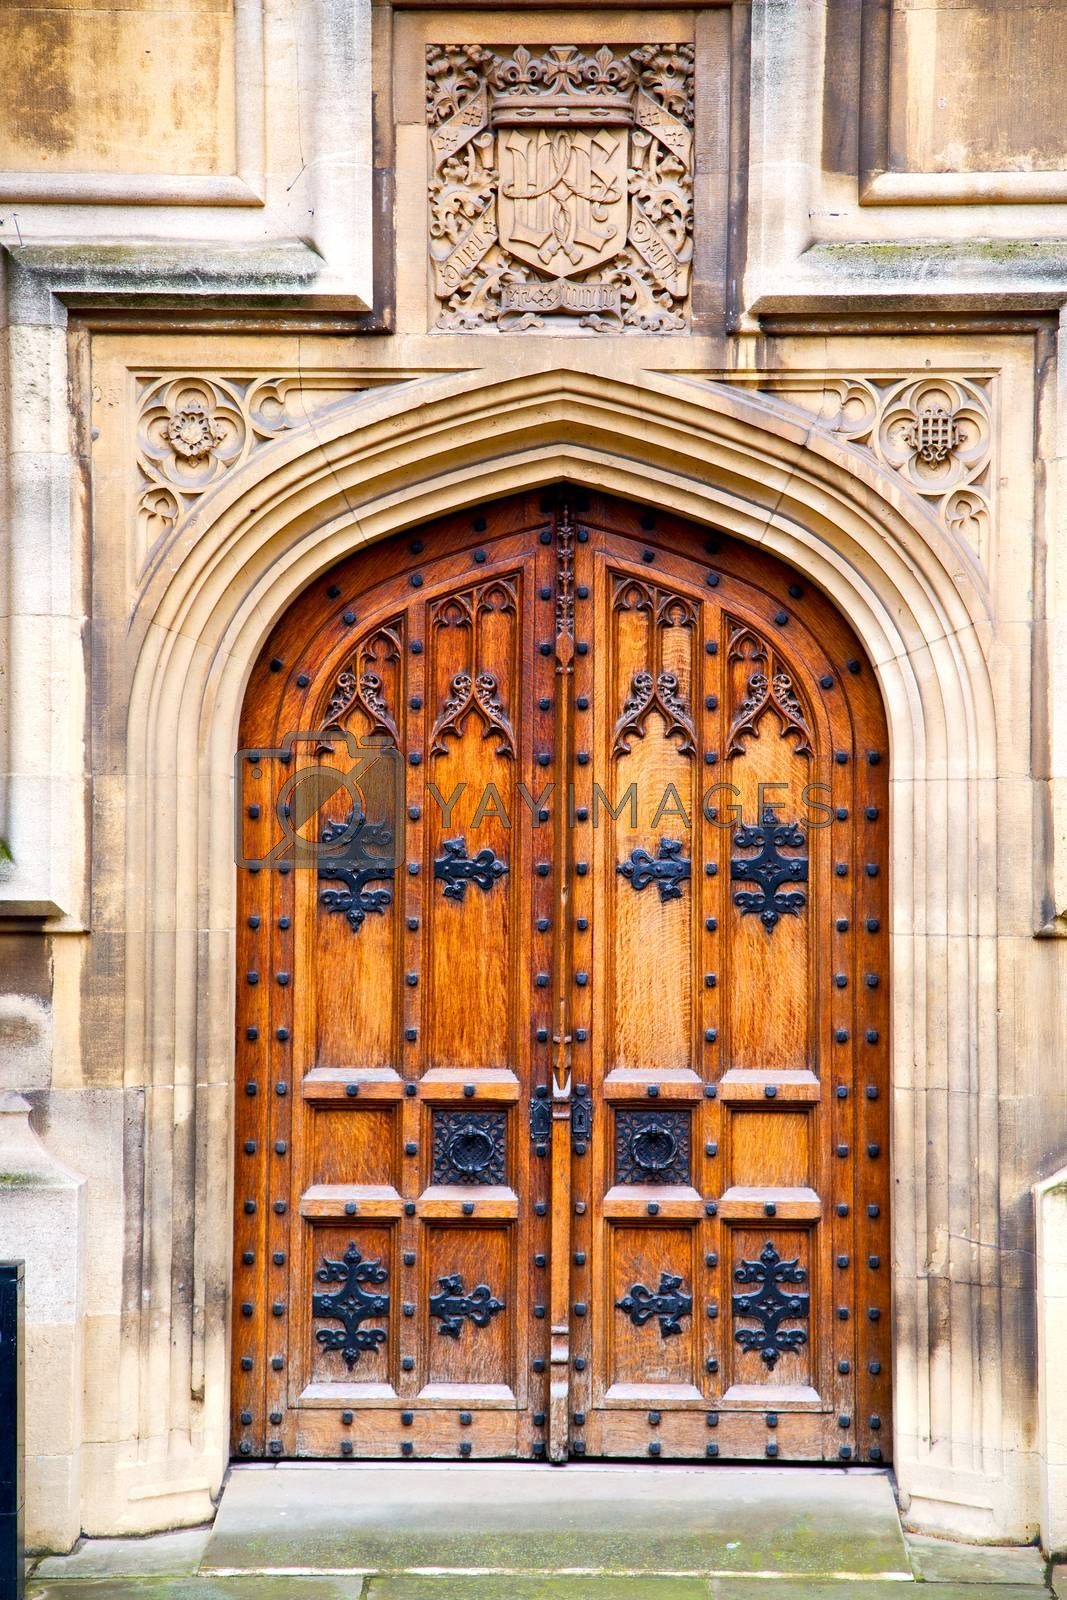 parliament in london door and marble antique    by lkpro